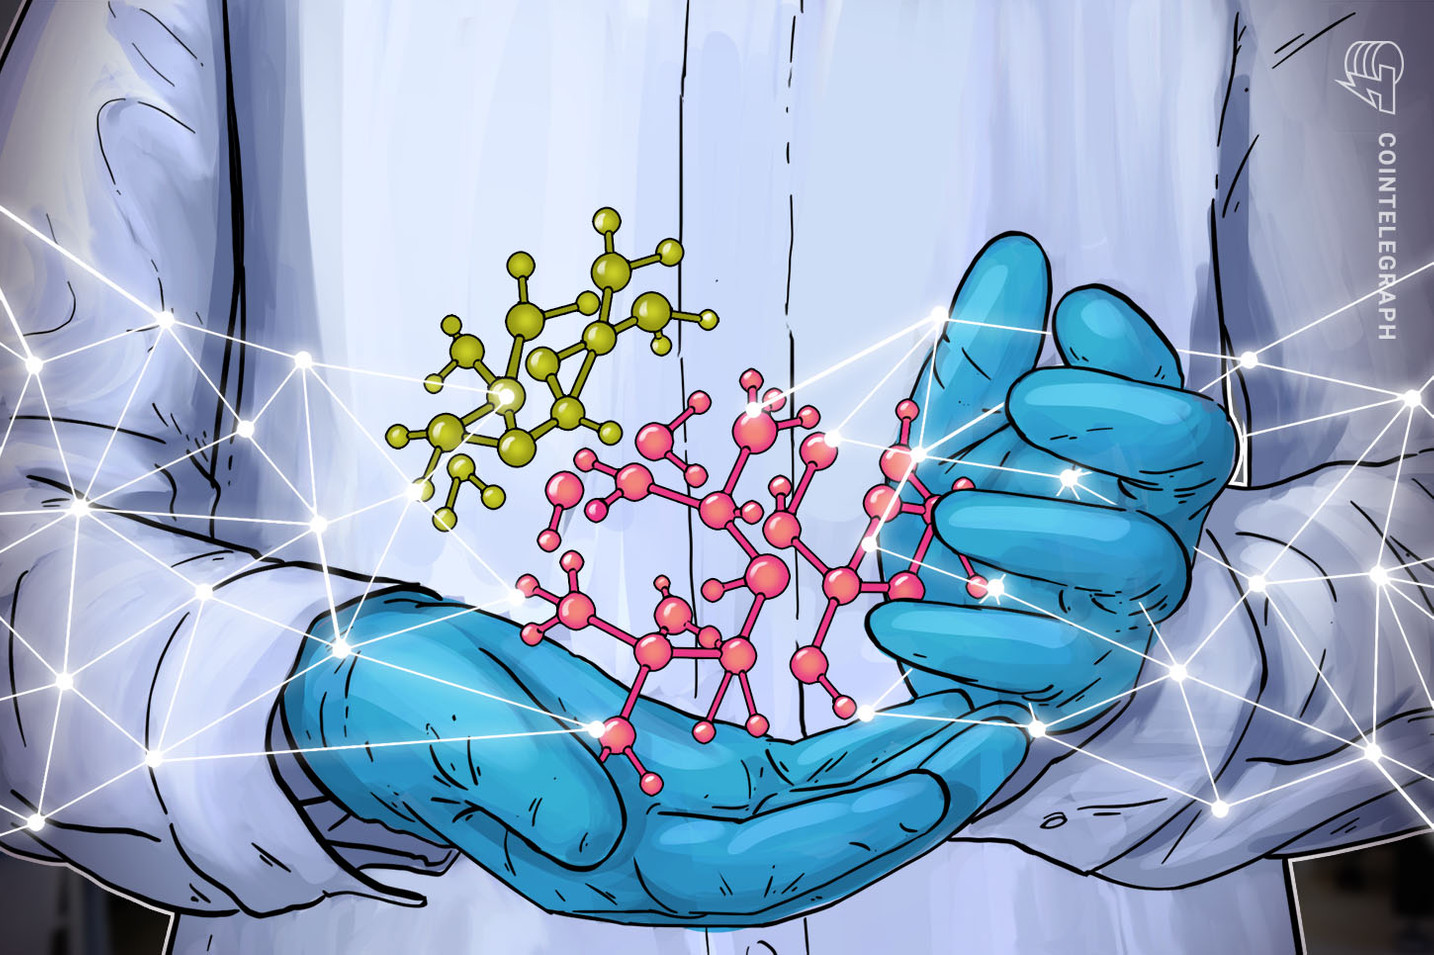 US Dept. of Energy Grants $4.8 Million to Fund Research of Tech Including Blockchain